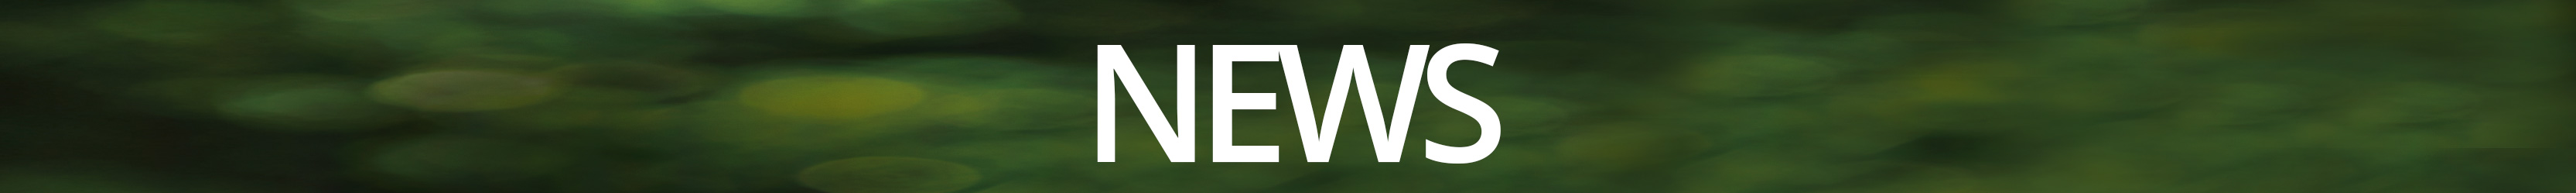 news-banner-green-center